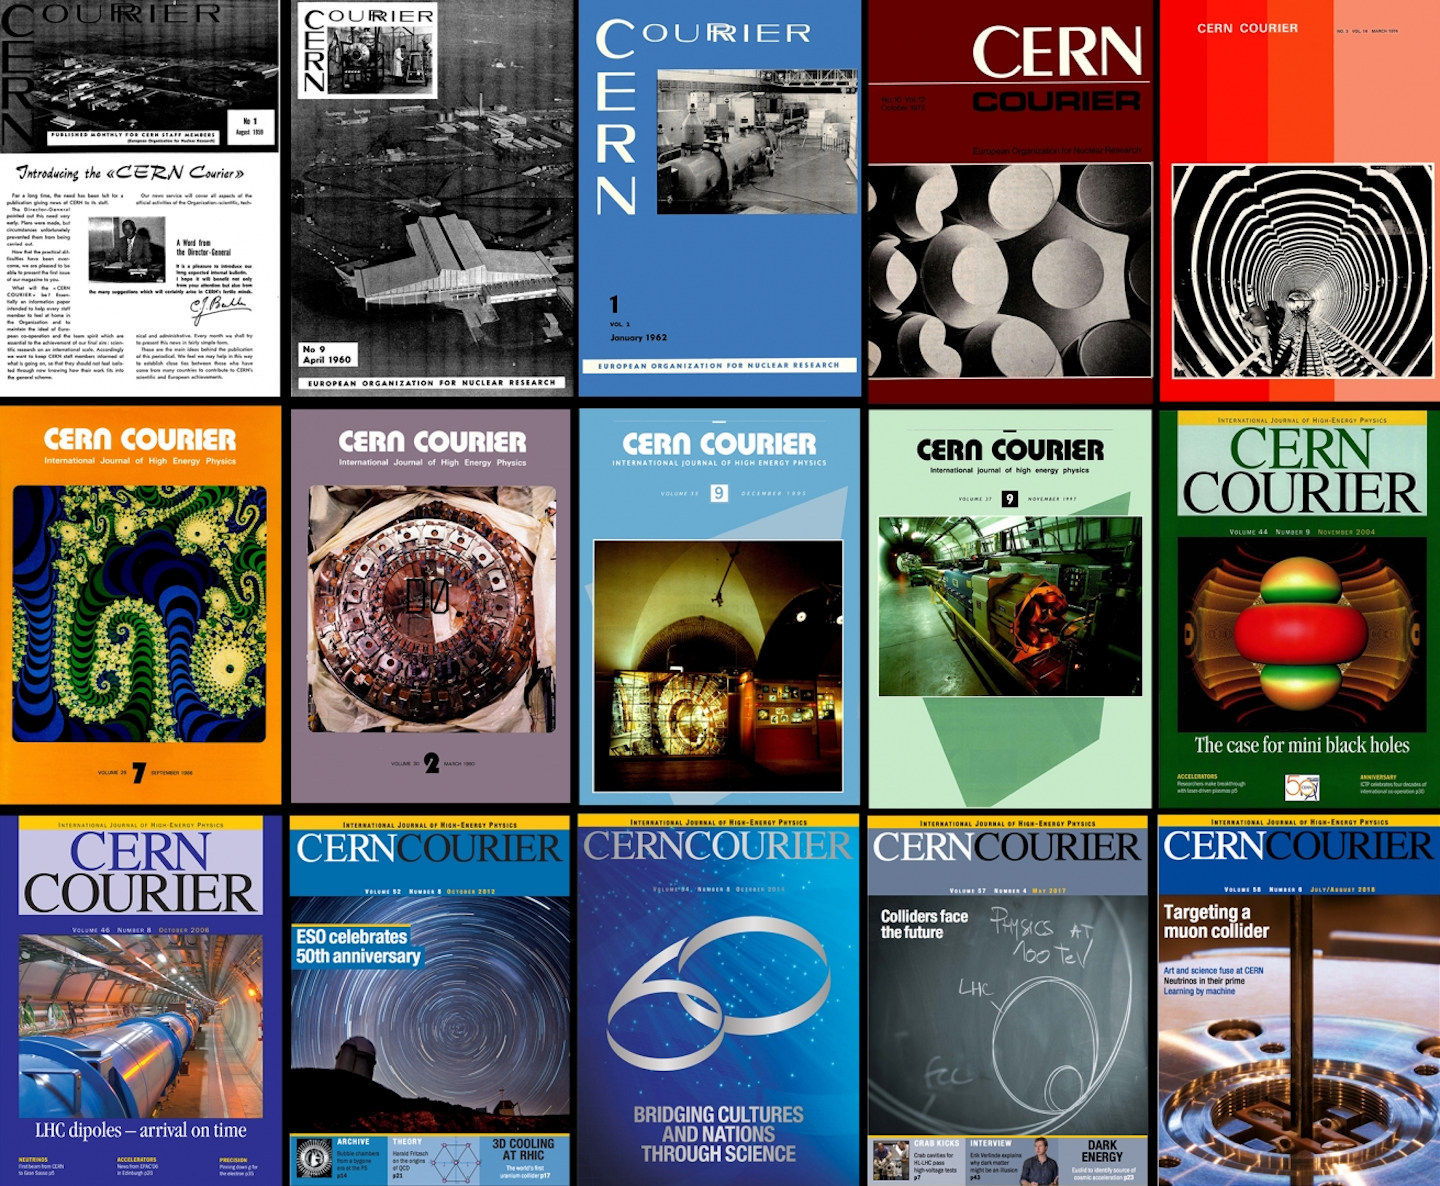 CERN Courier collage